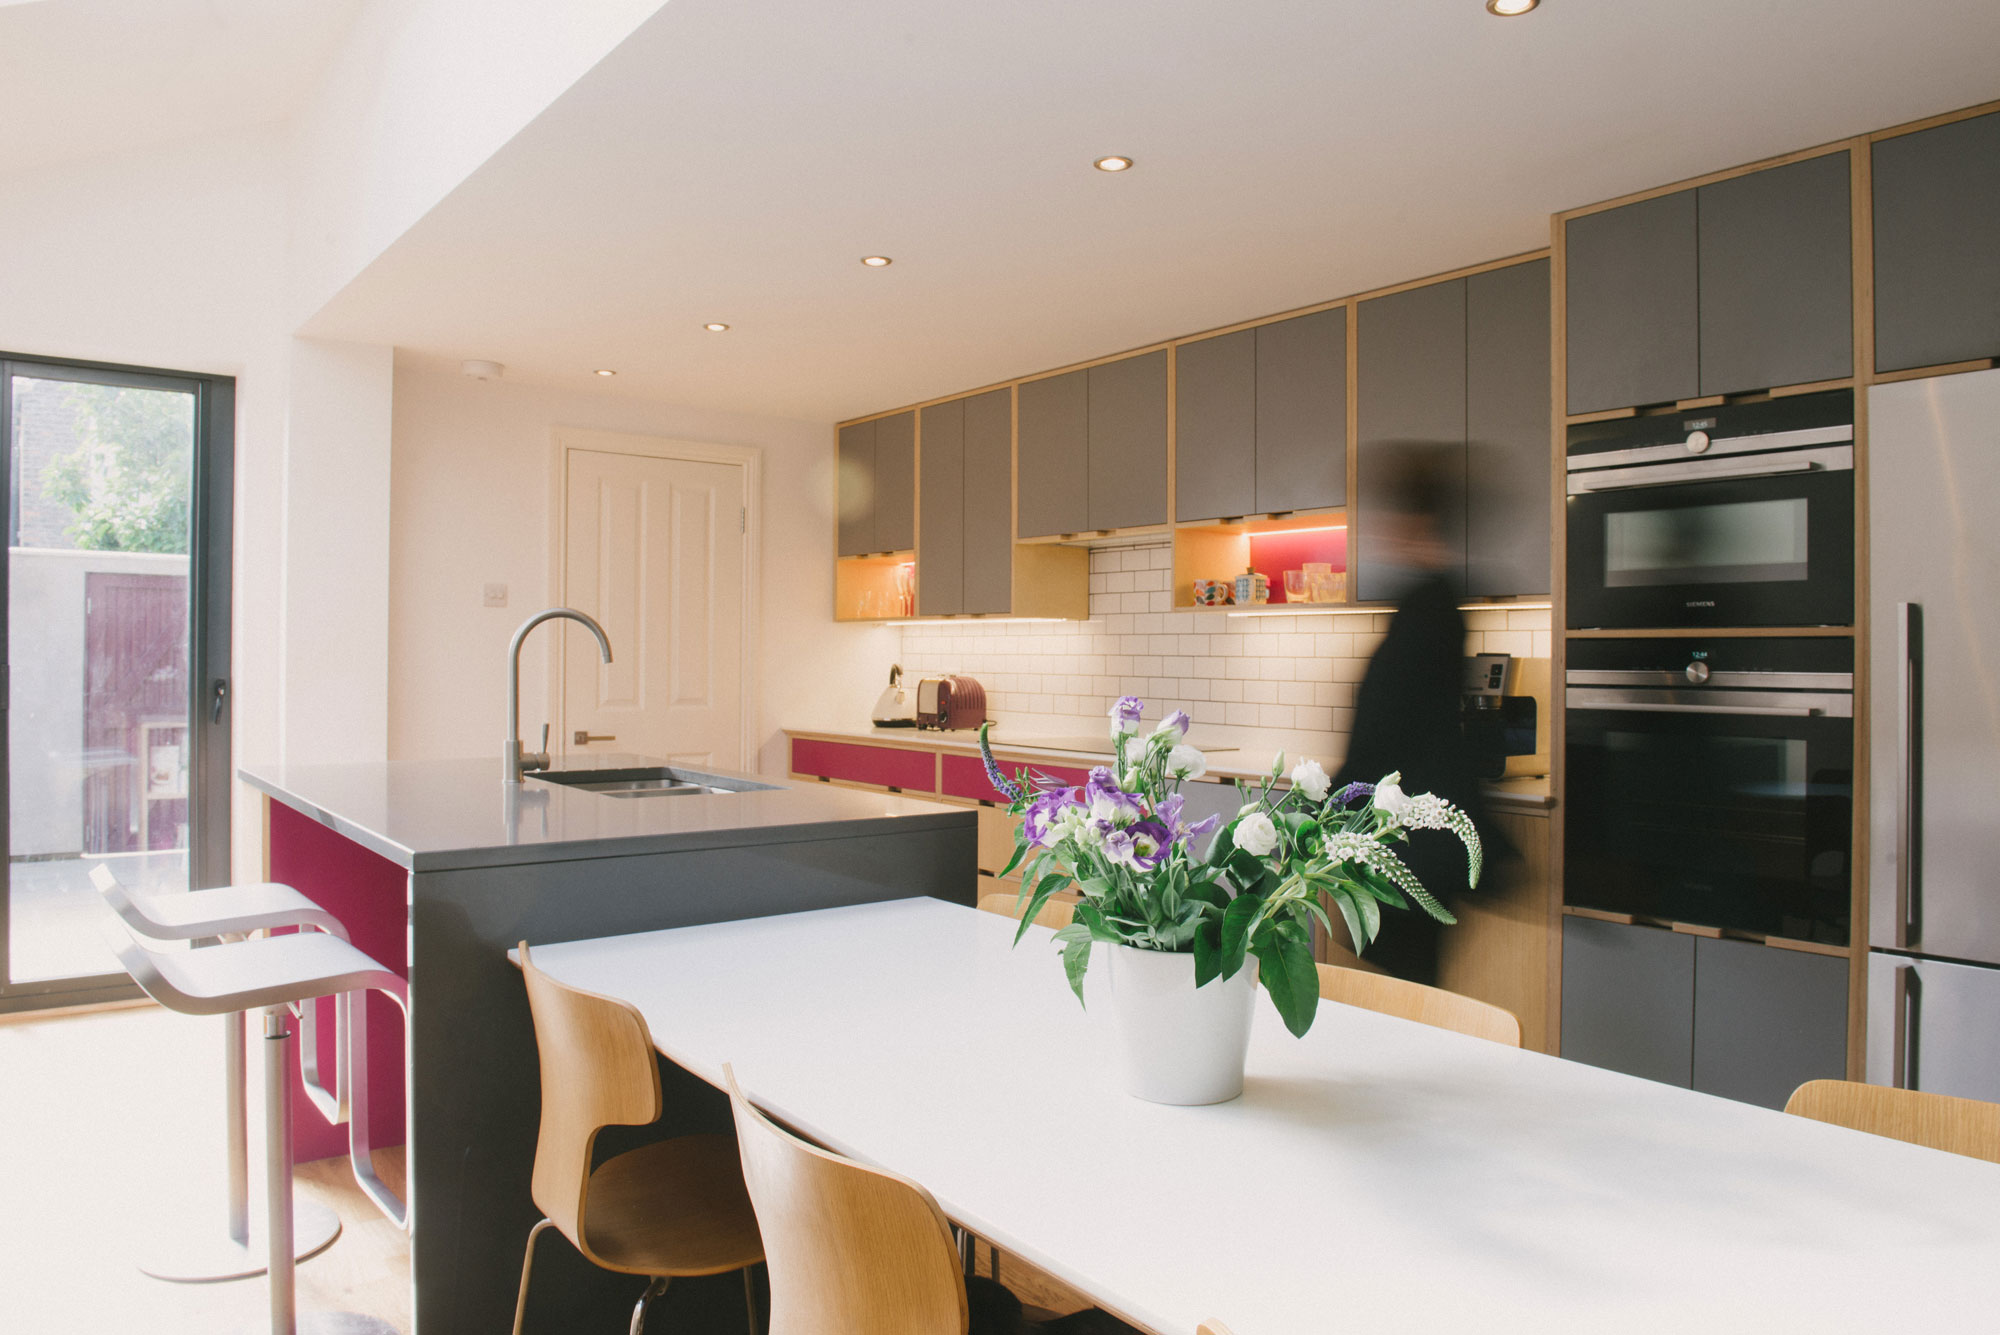 Client walks through their pink and grey plywood kitchen